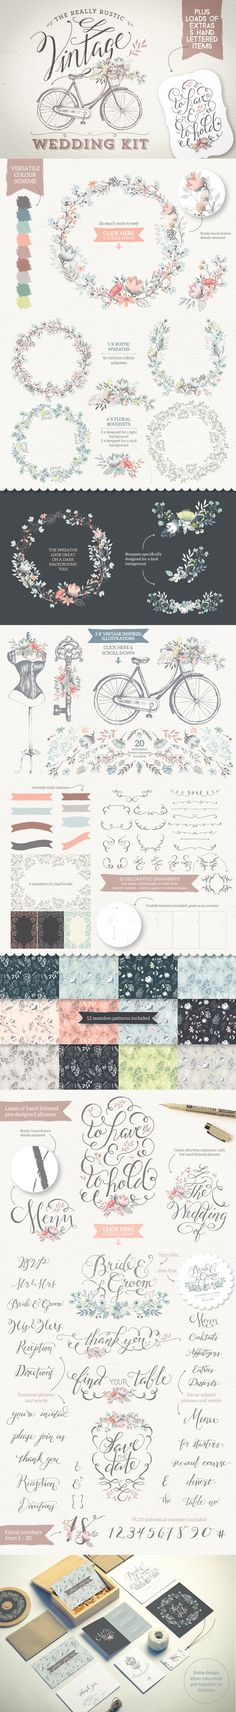 Really Rustic Vintage Wedding Kit by Lisa Glanz | The Comprehensive, Creative Vectors Bundle Mar 2015